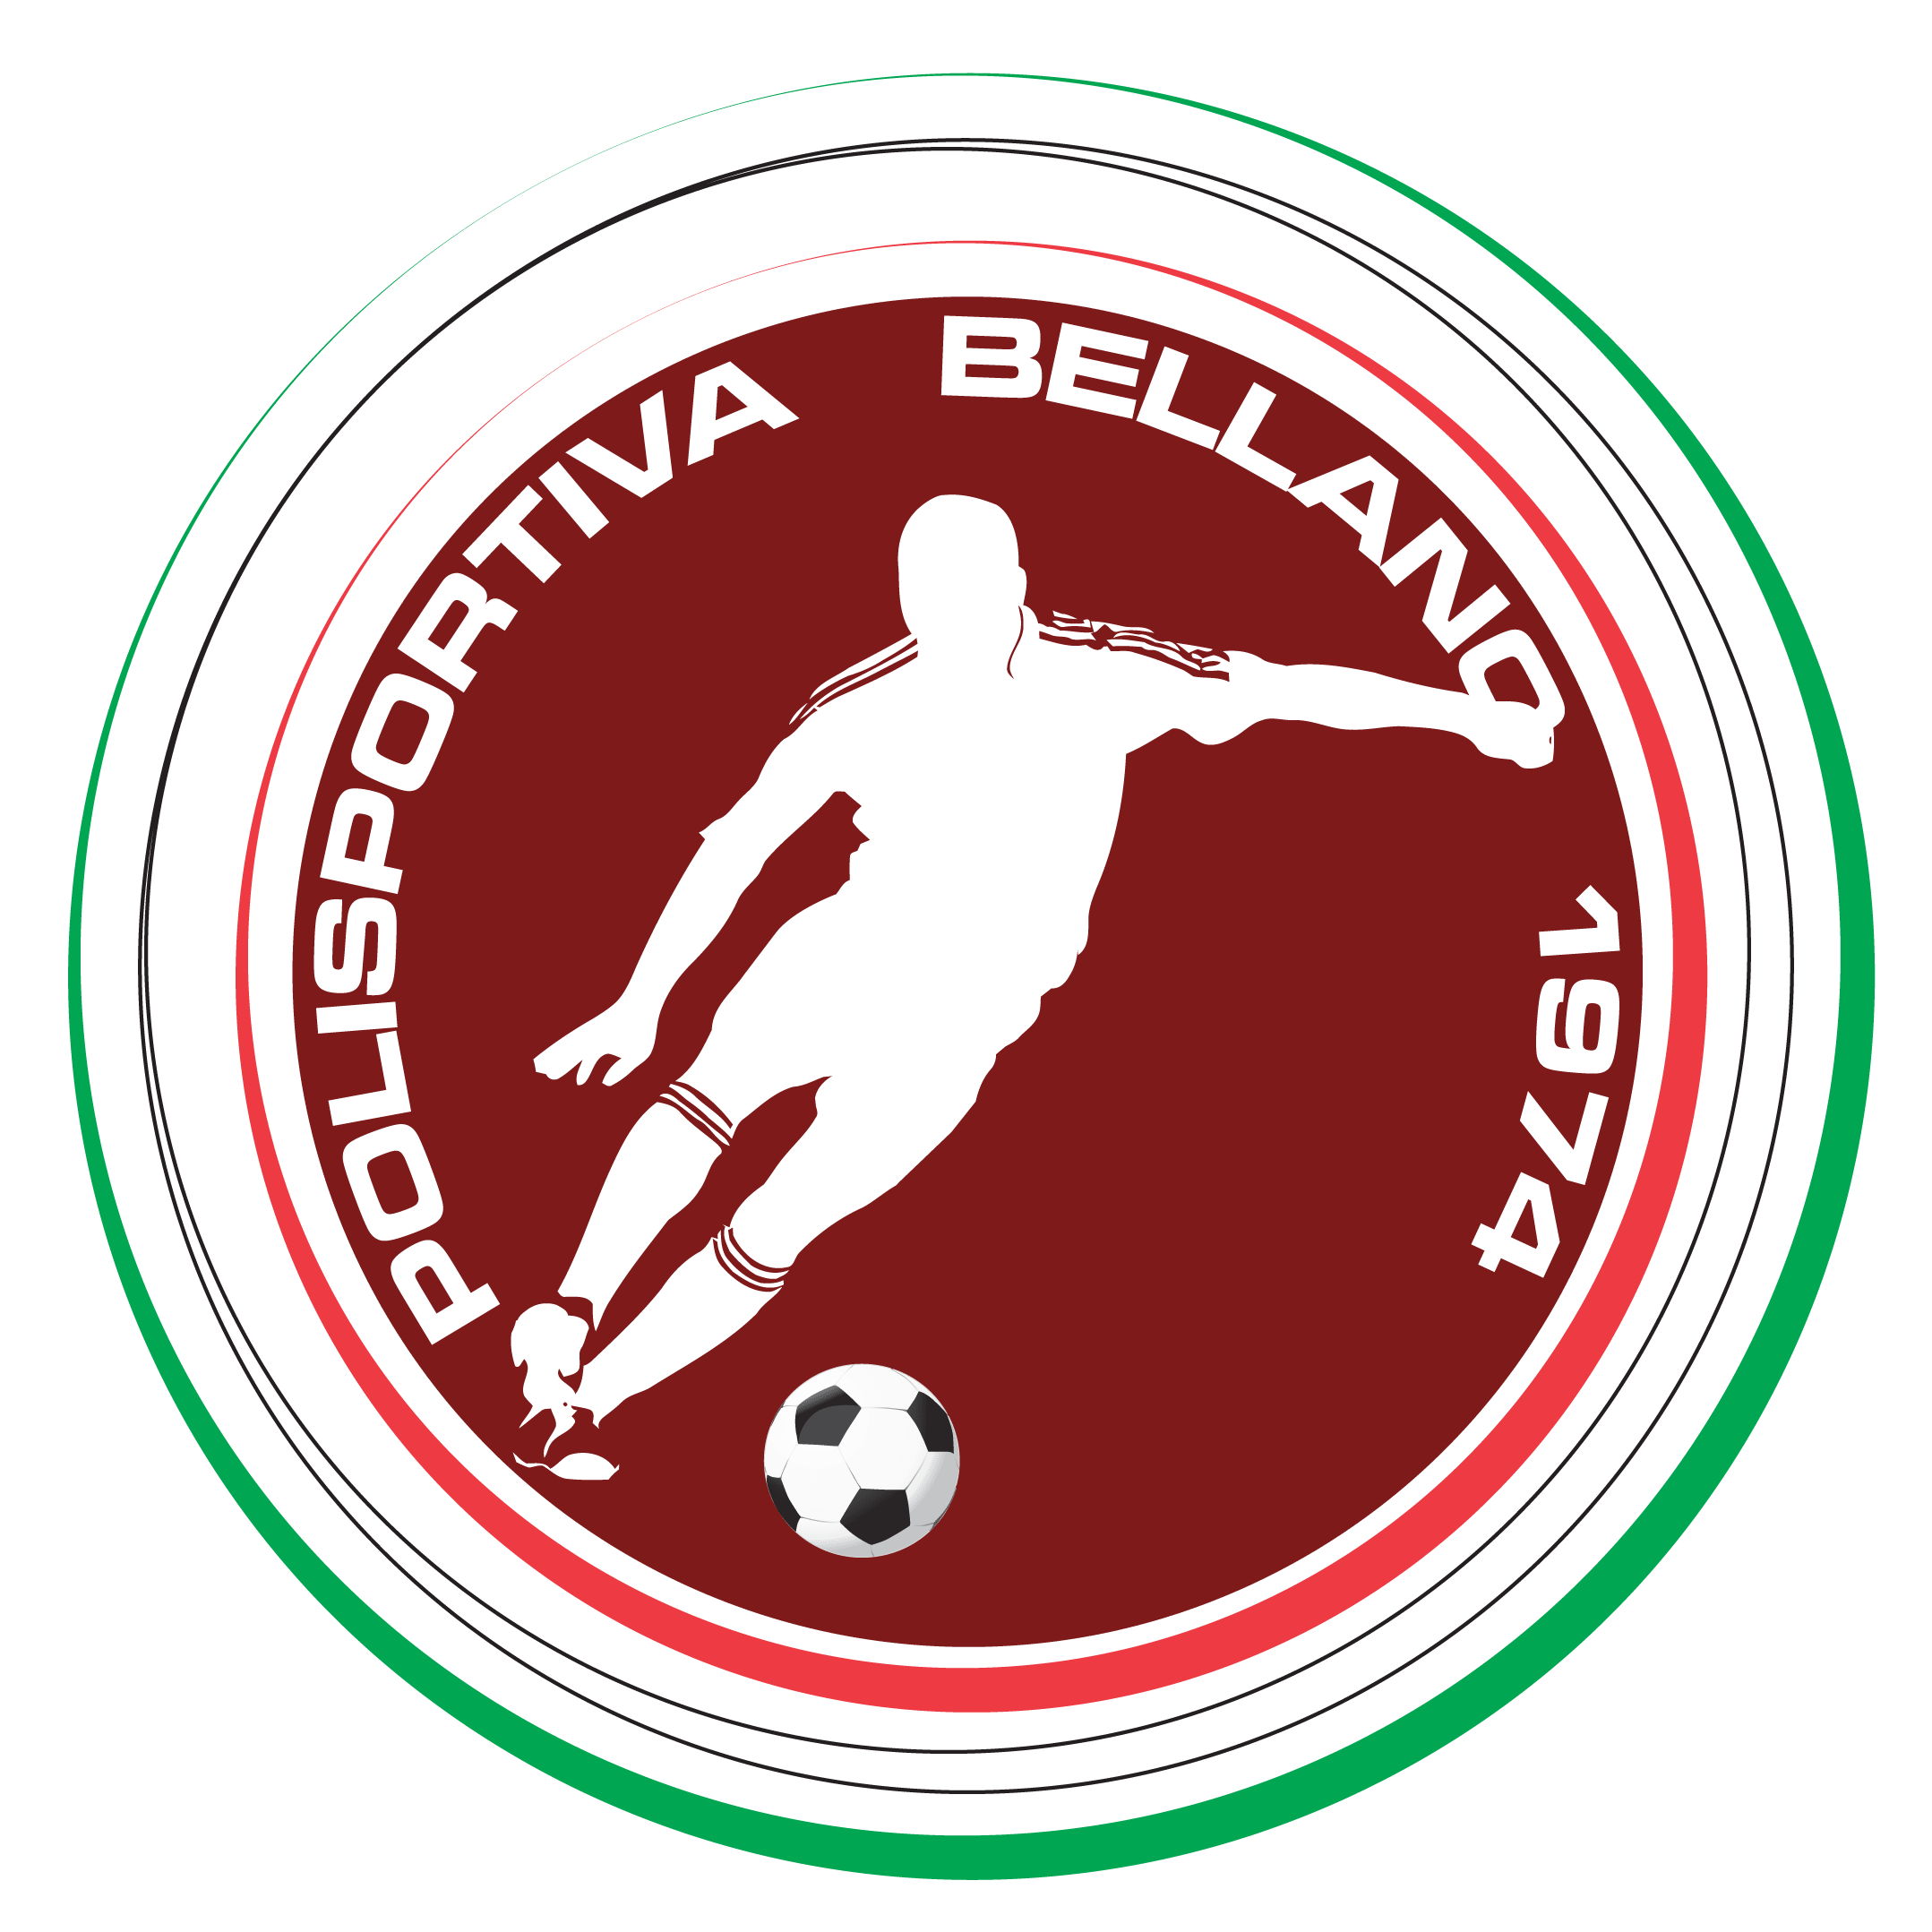 Polisportiva Bellano - Calcio